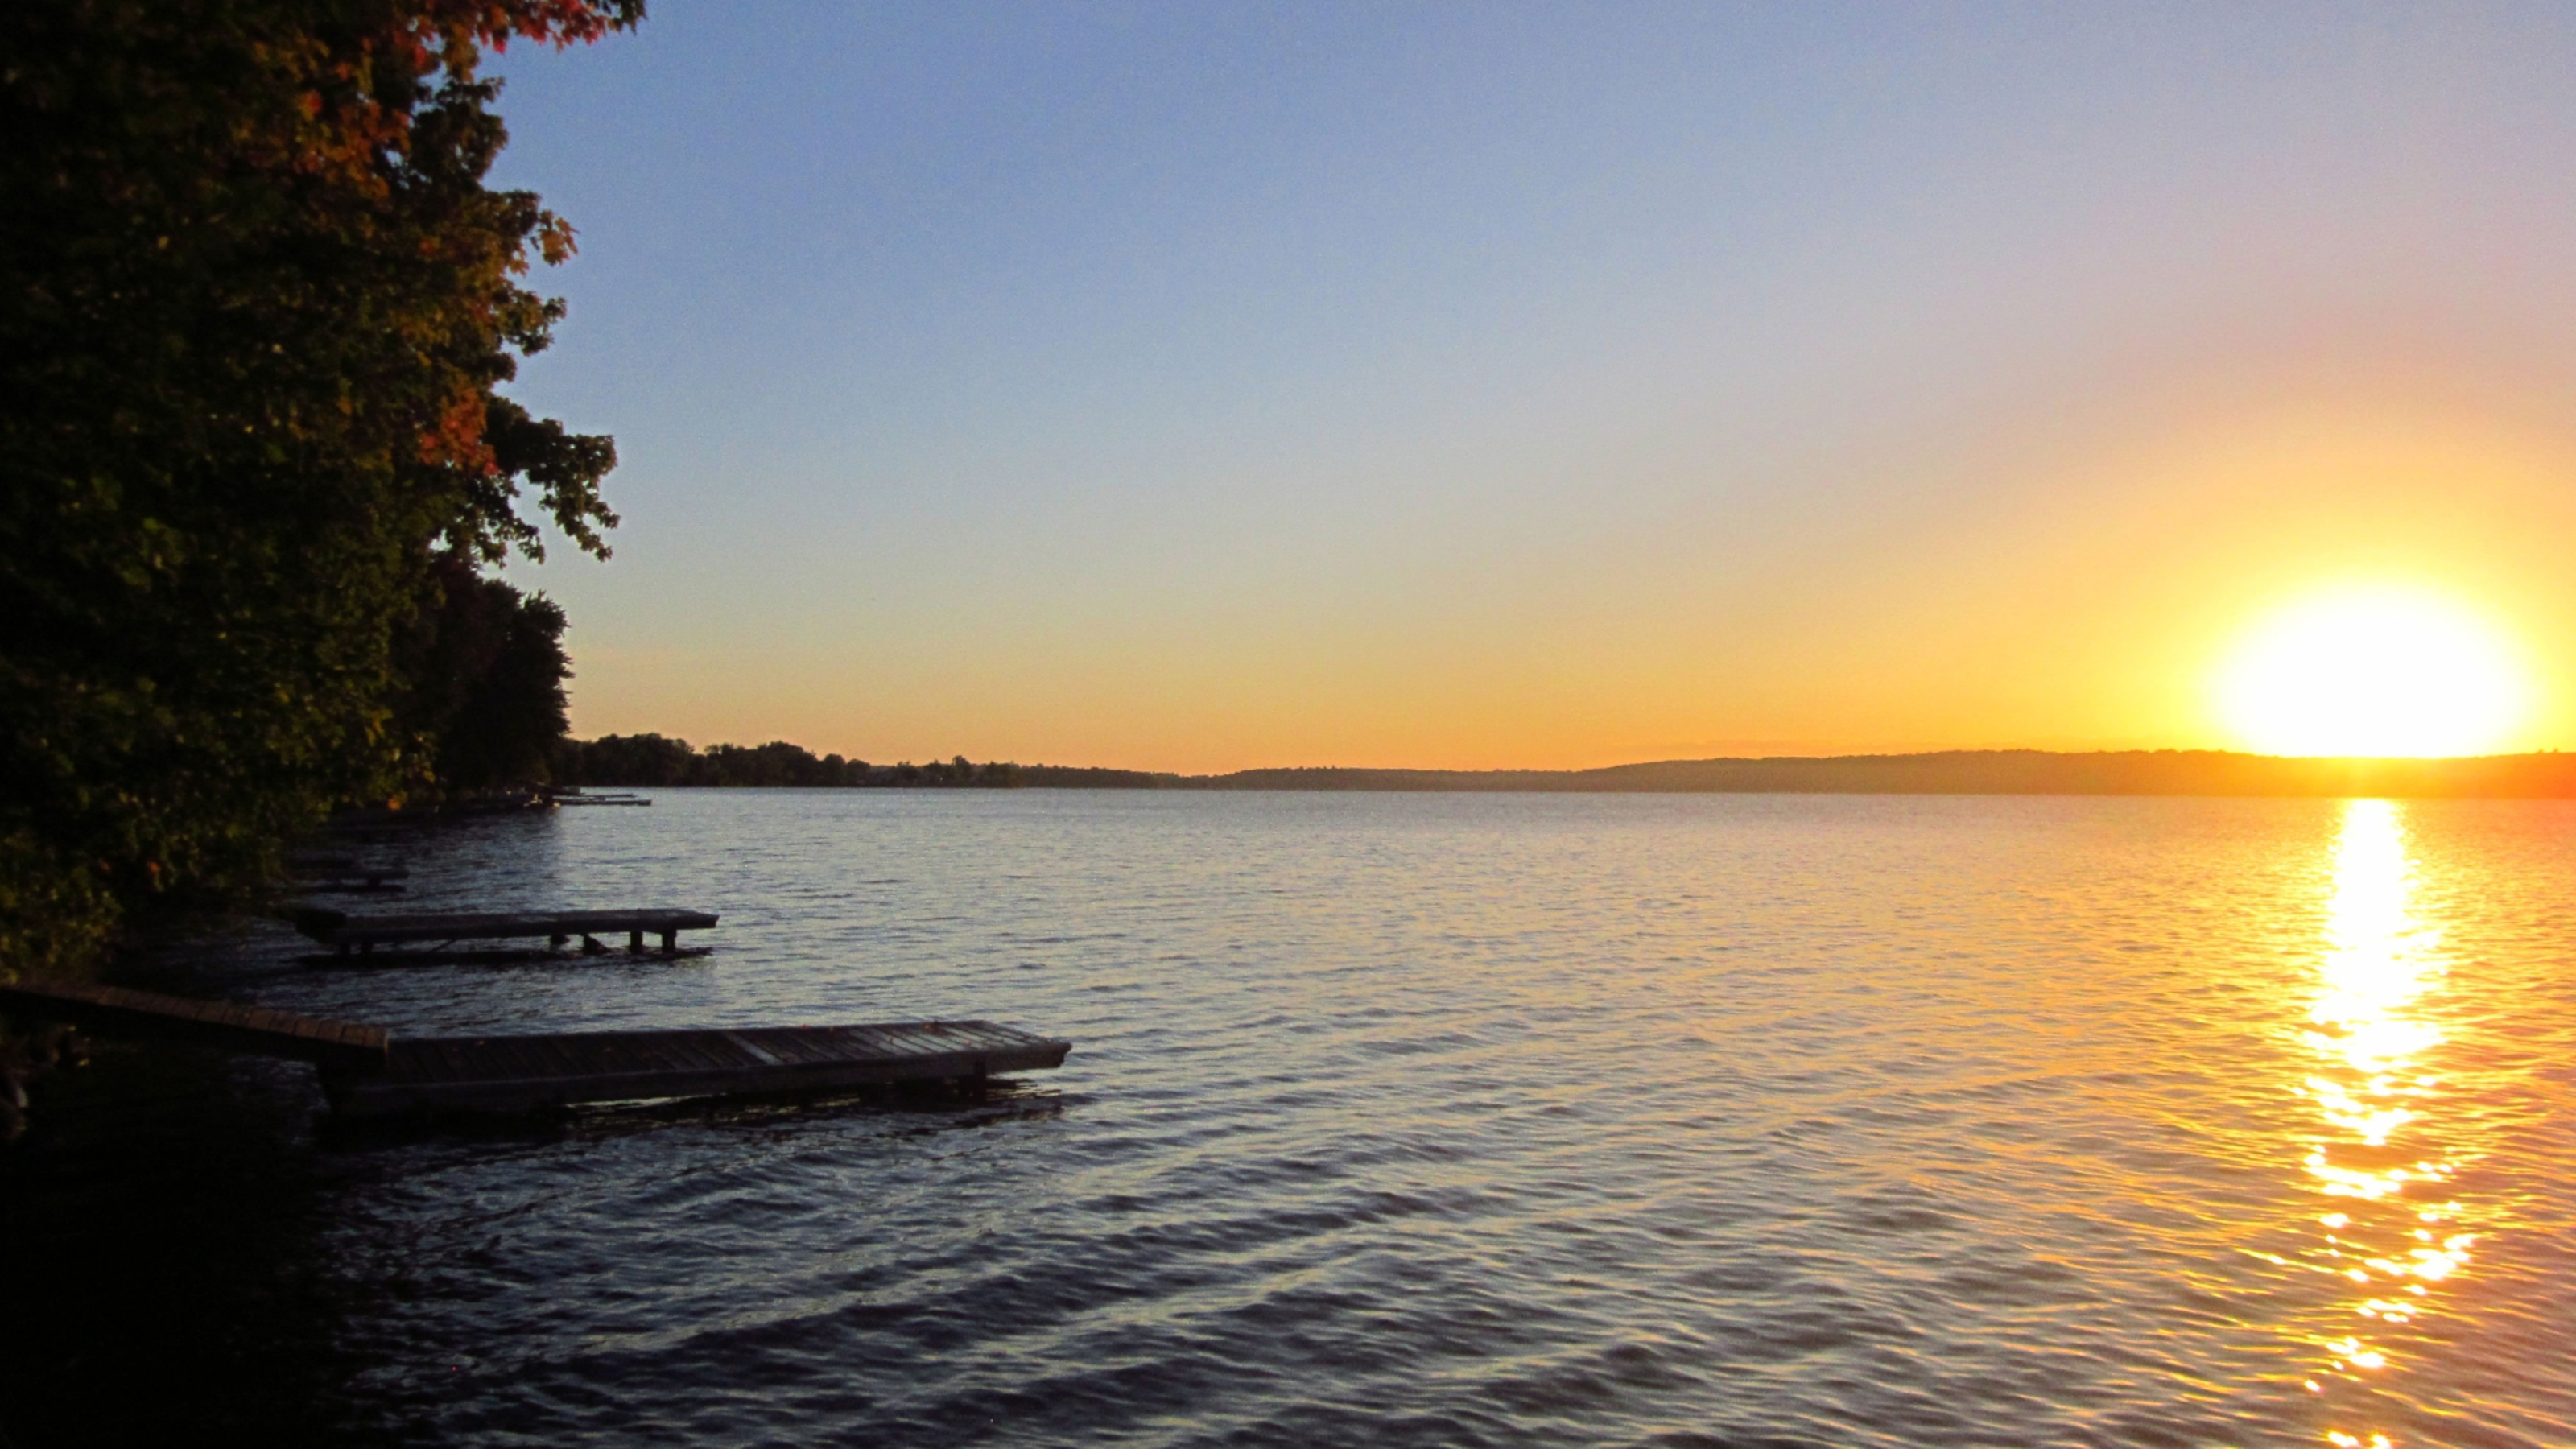 Blissful sunrise at Elmhirst Resort, Ontario.